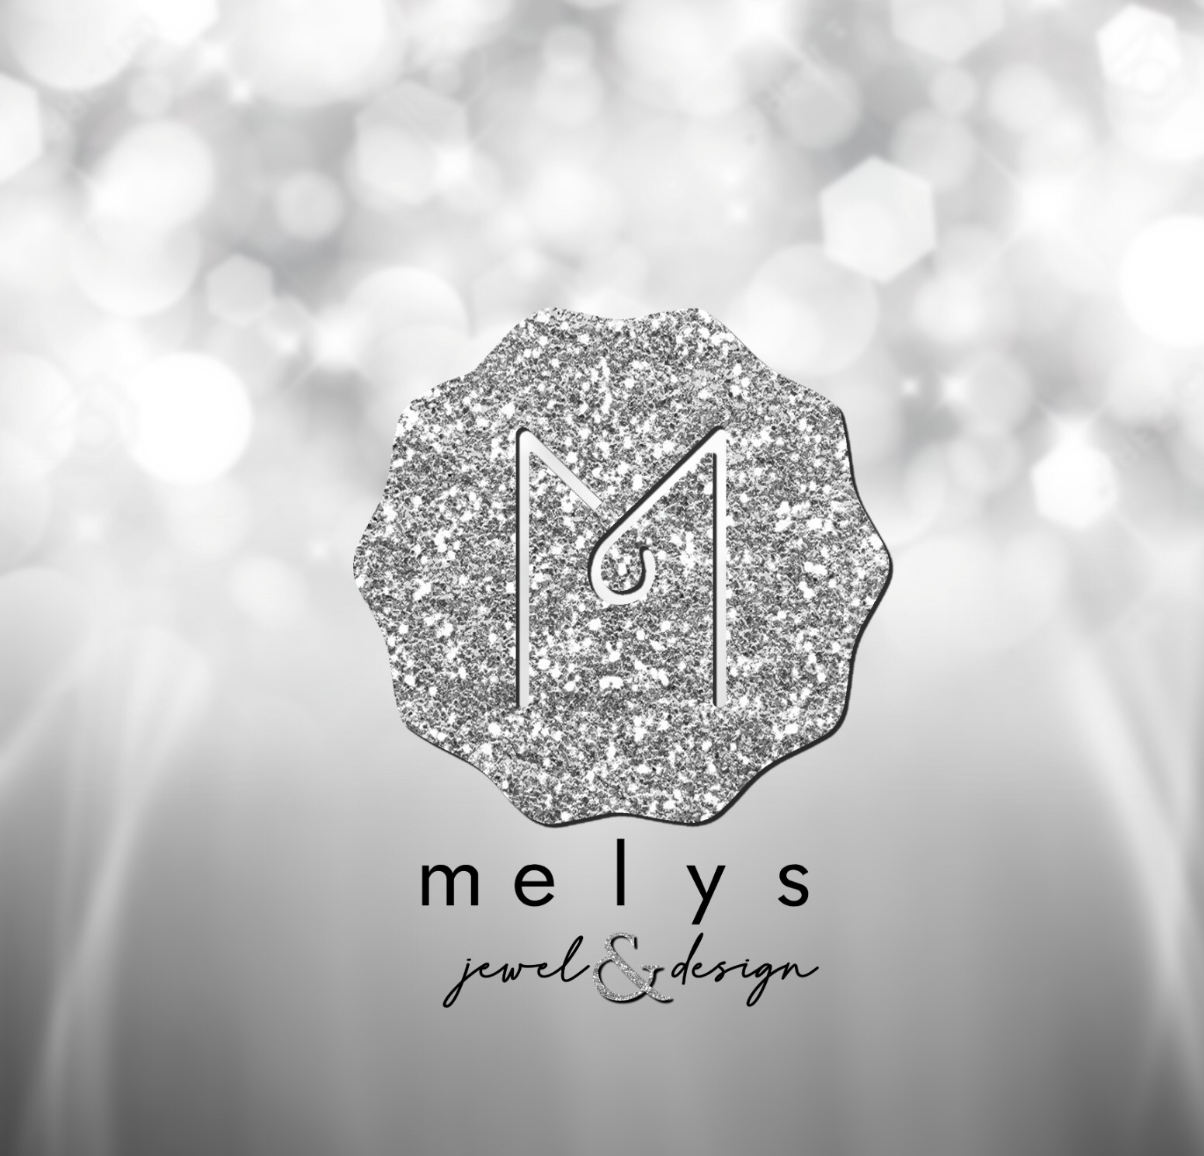 Melys Jewel & Design